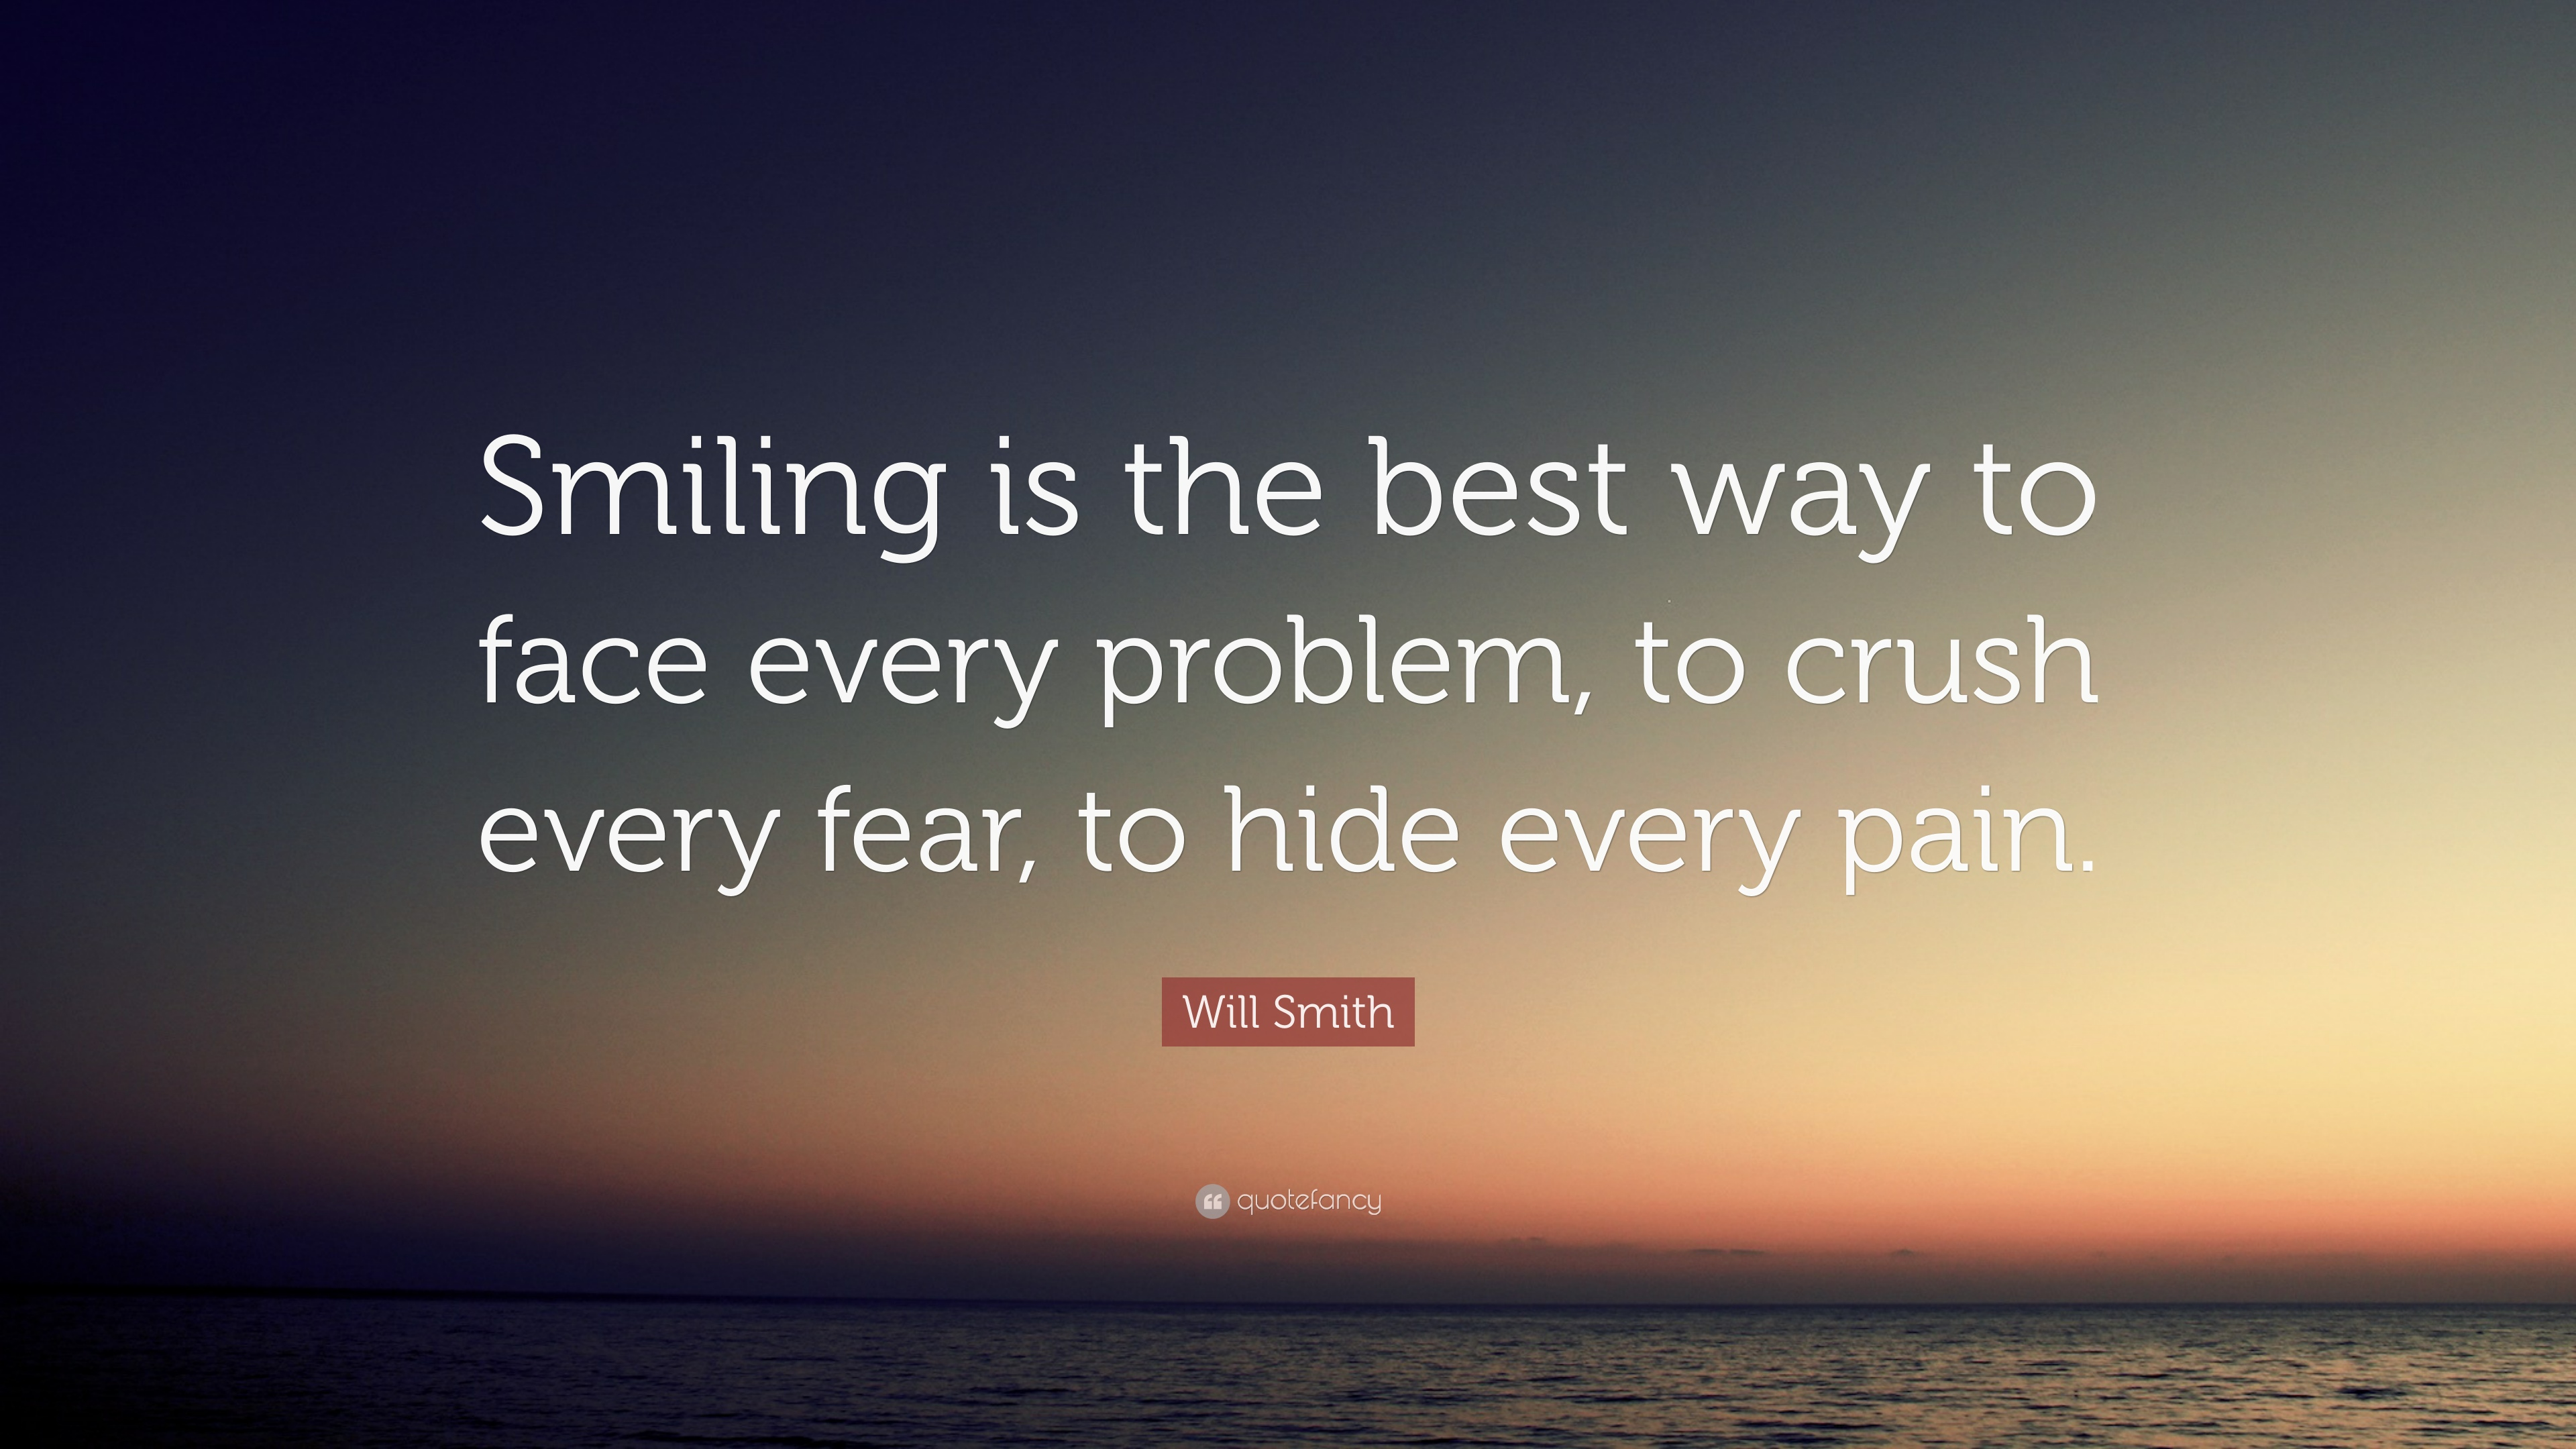 Will Smith Quote Smiling Is The Best Way To Face Every Problem To